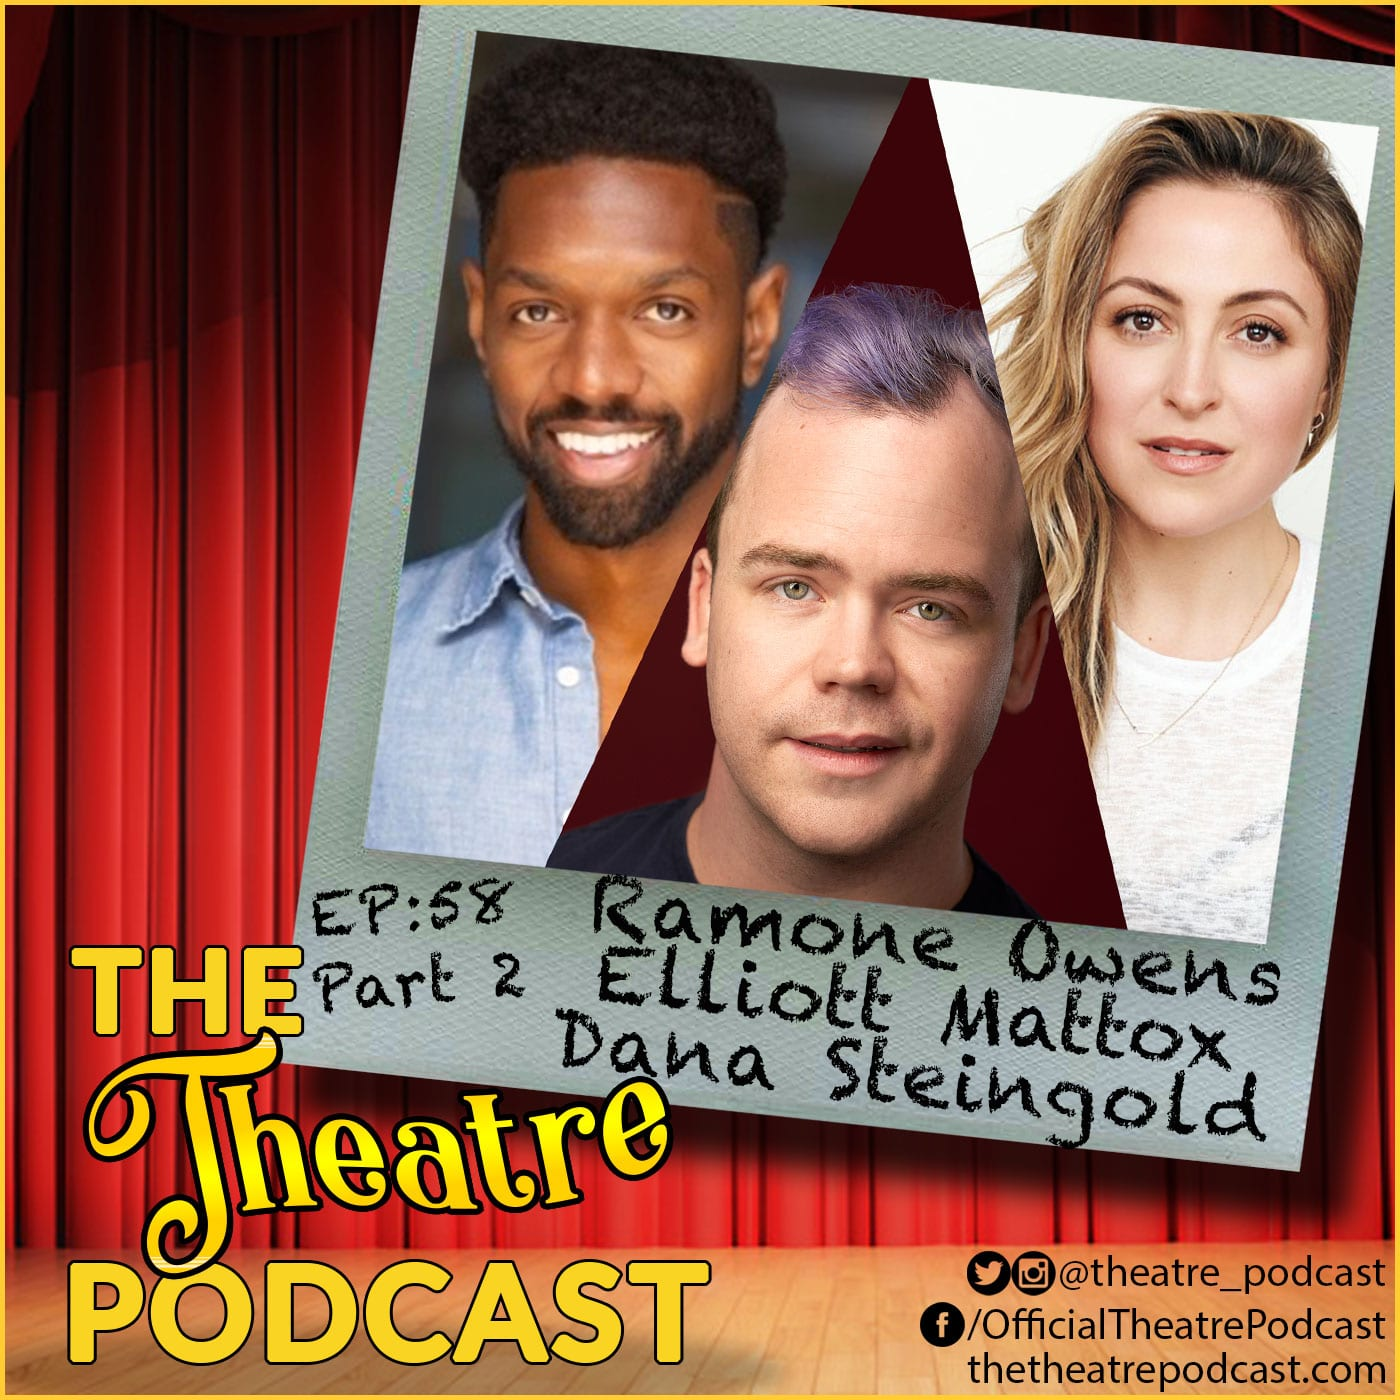 The Theatre Podcast Ep58 - Elliot Mattox, Dana Steingold, Ramone Onens of the Beelejuice Ensemble (Part 2)